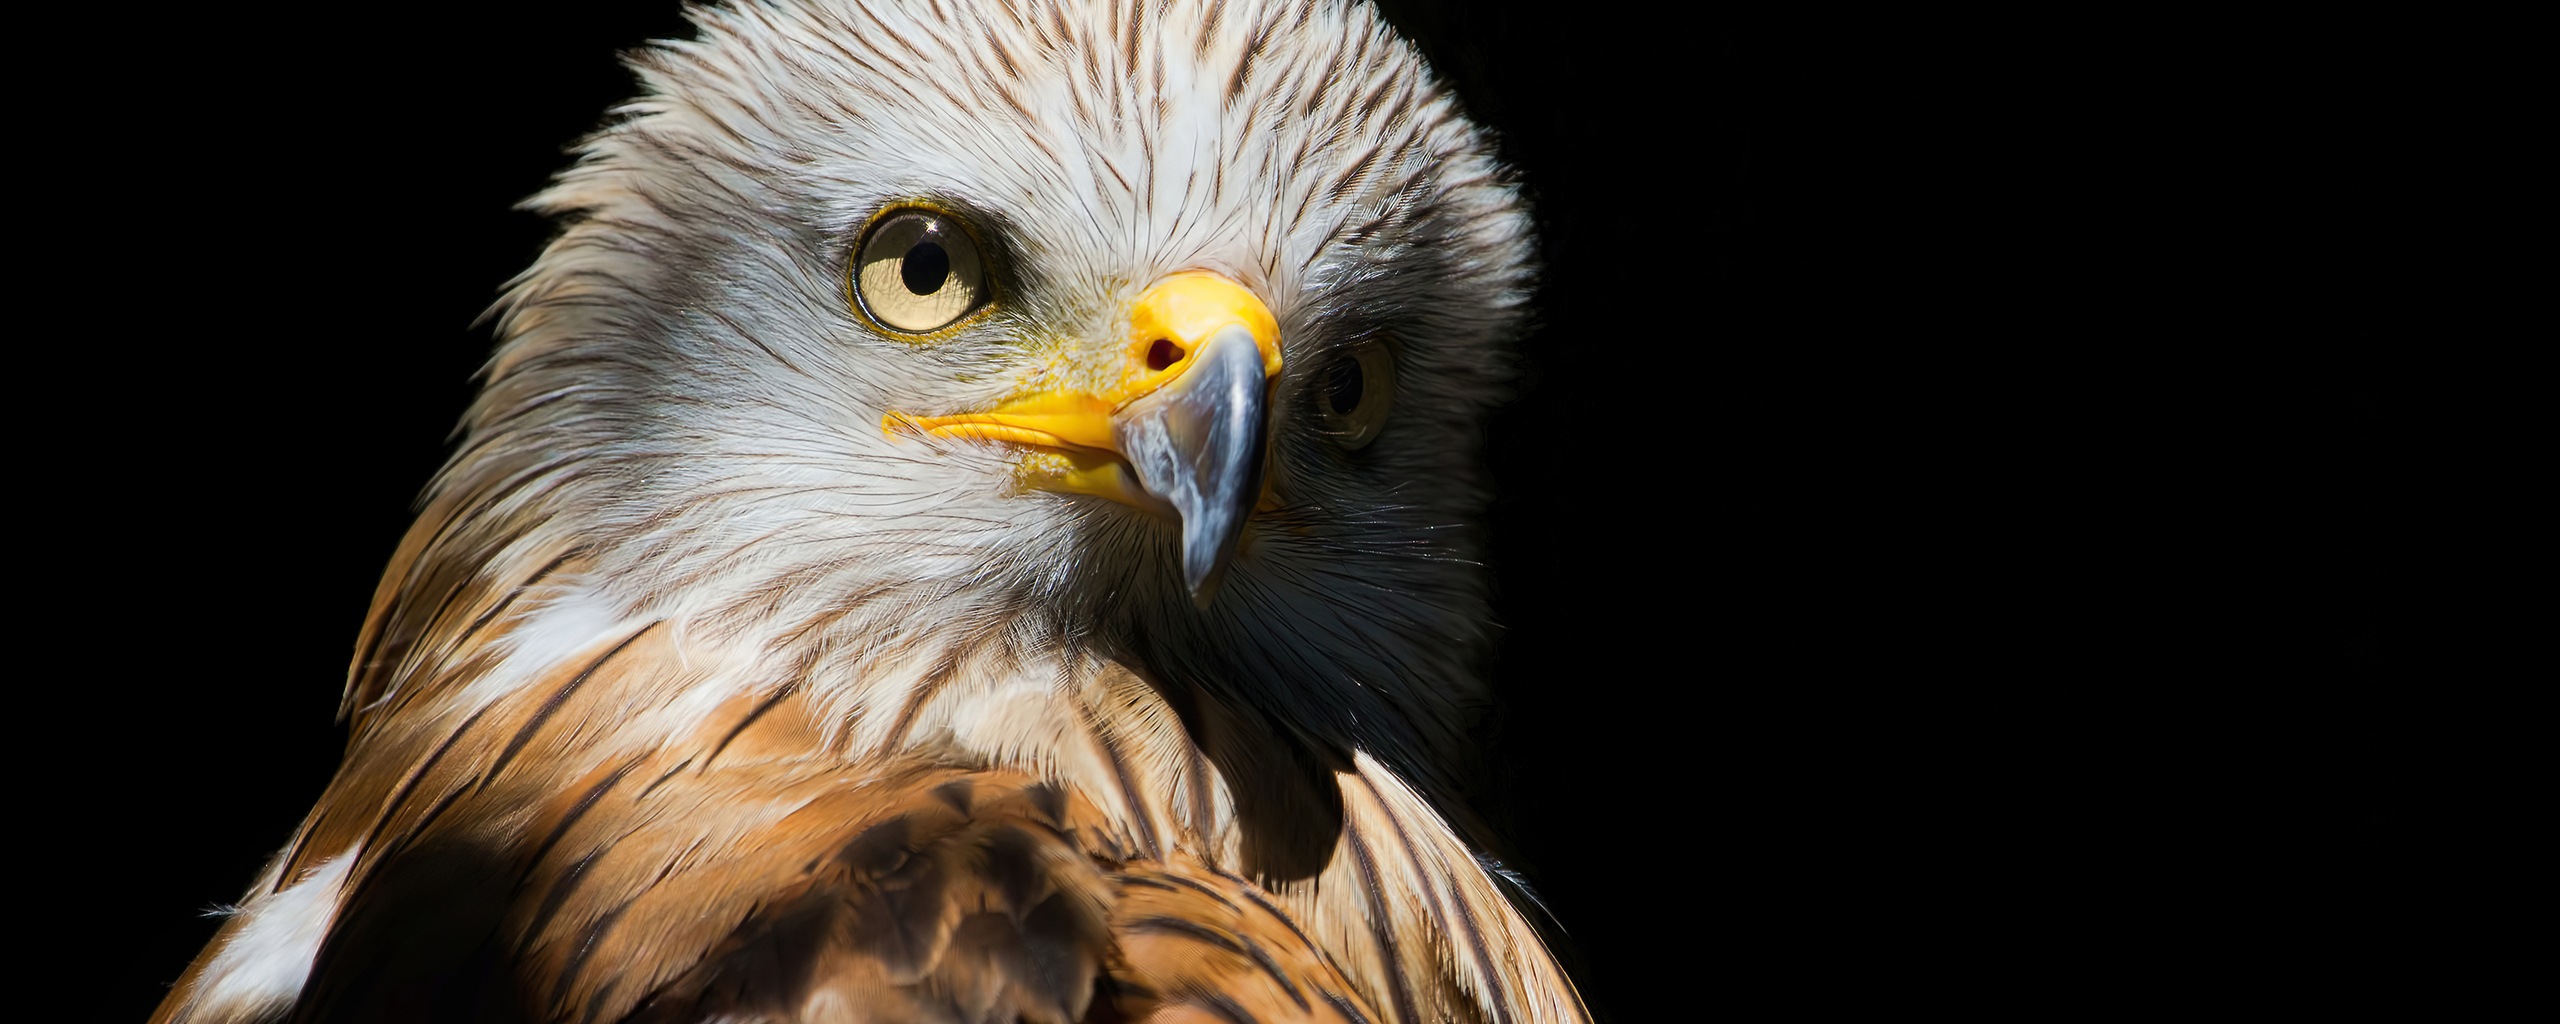 eagle-red-kite-black-beak-4k-9y.jpg